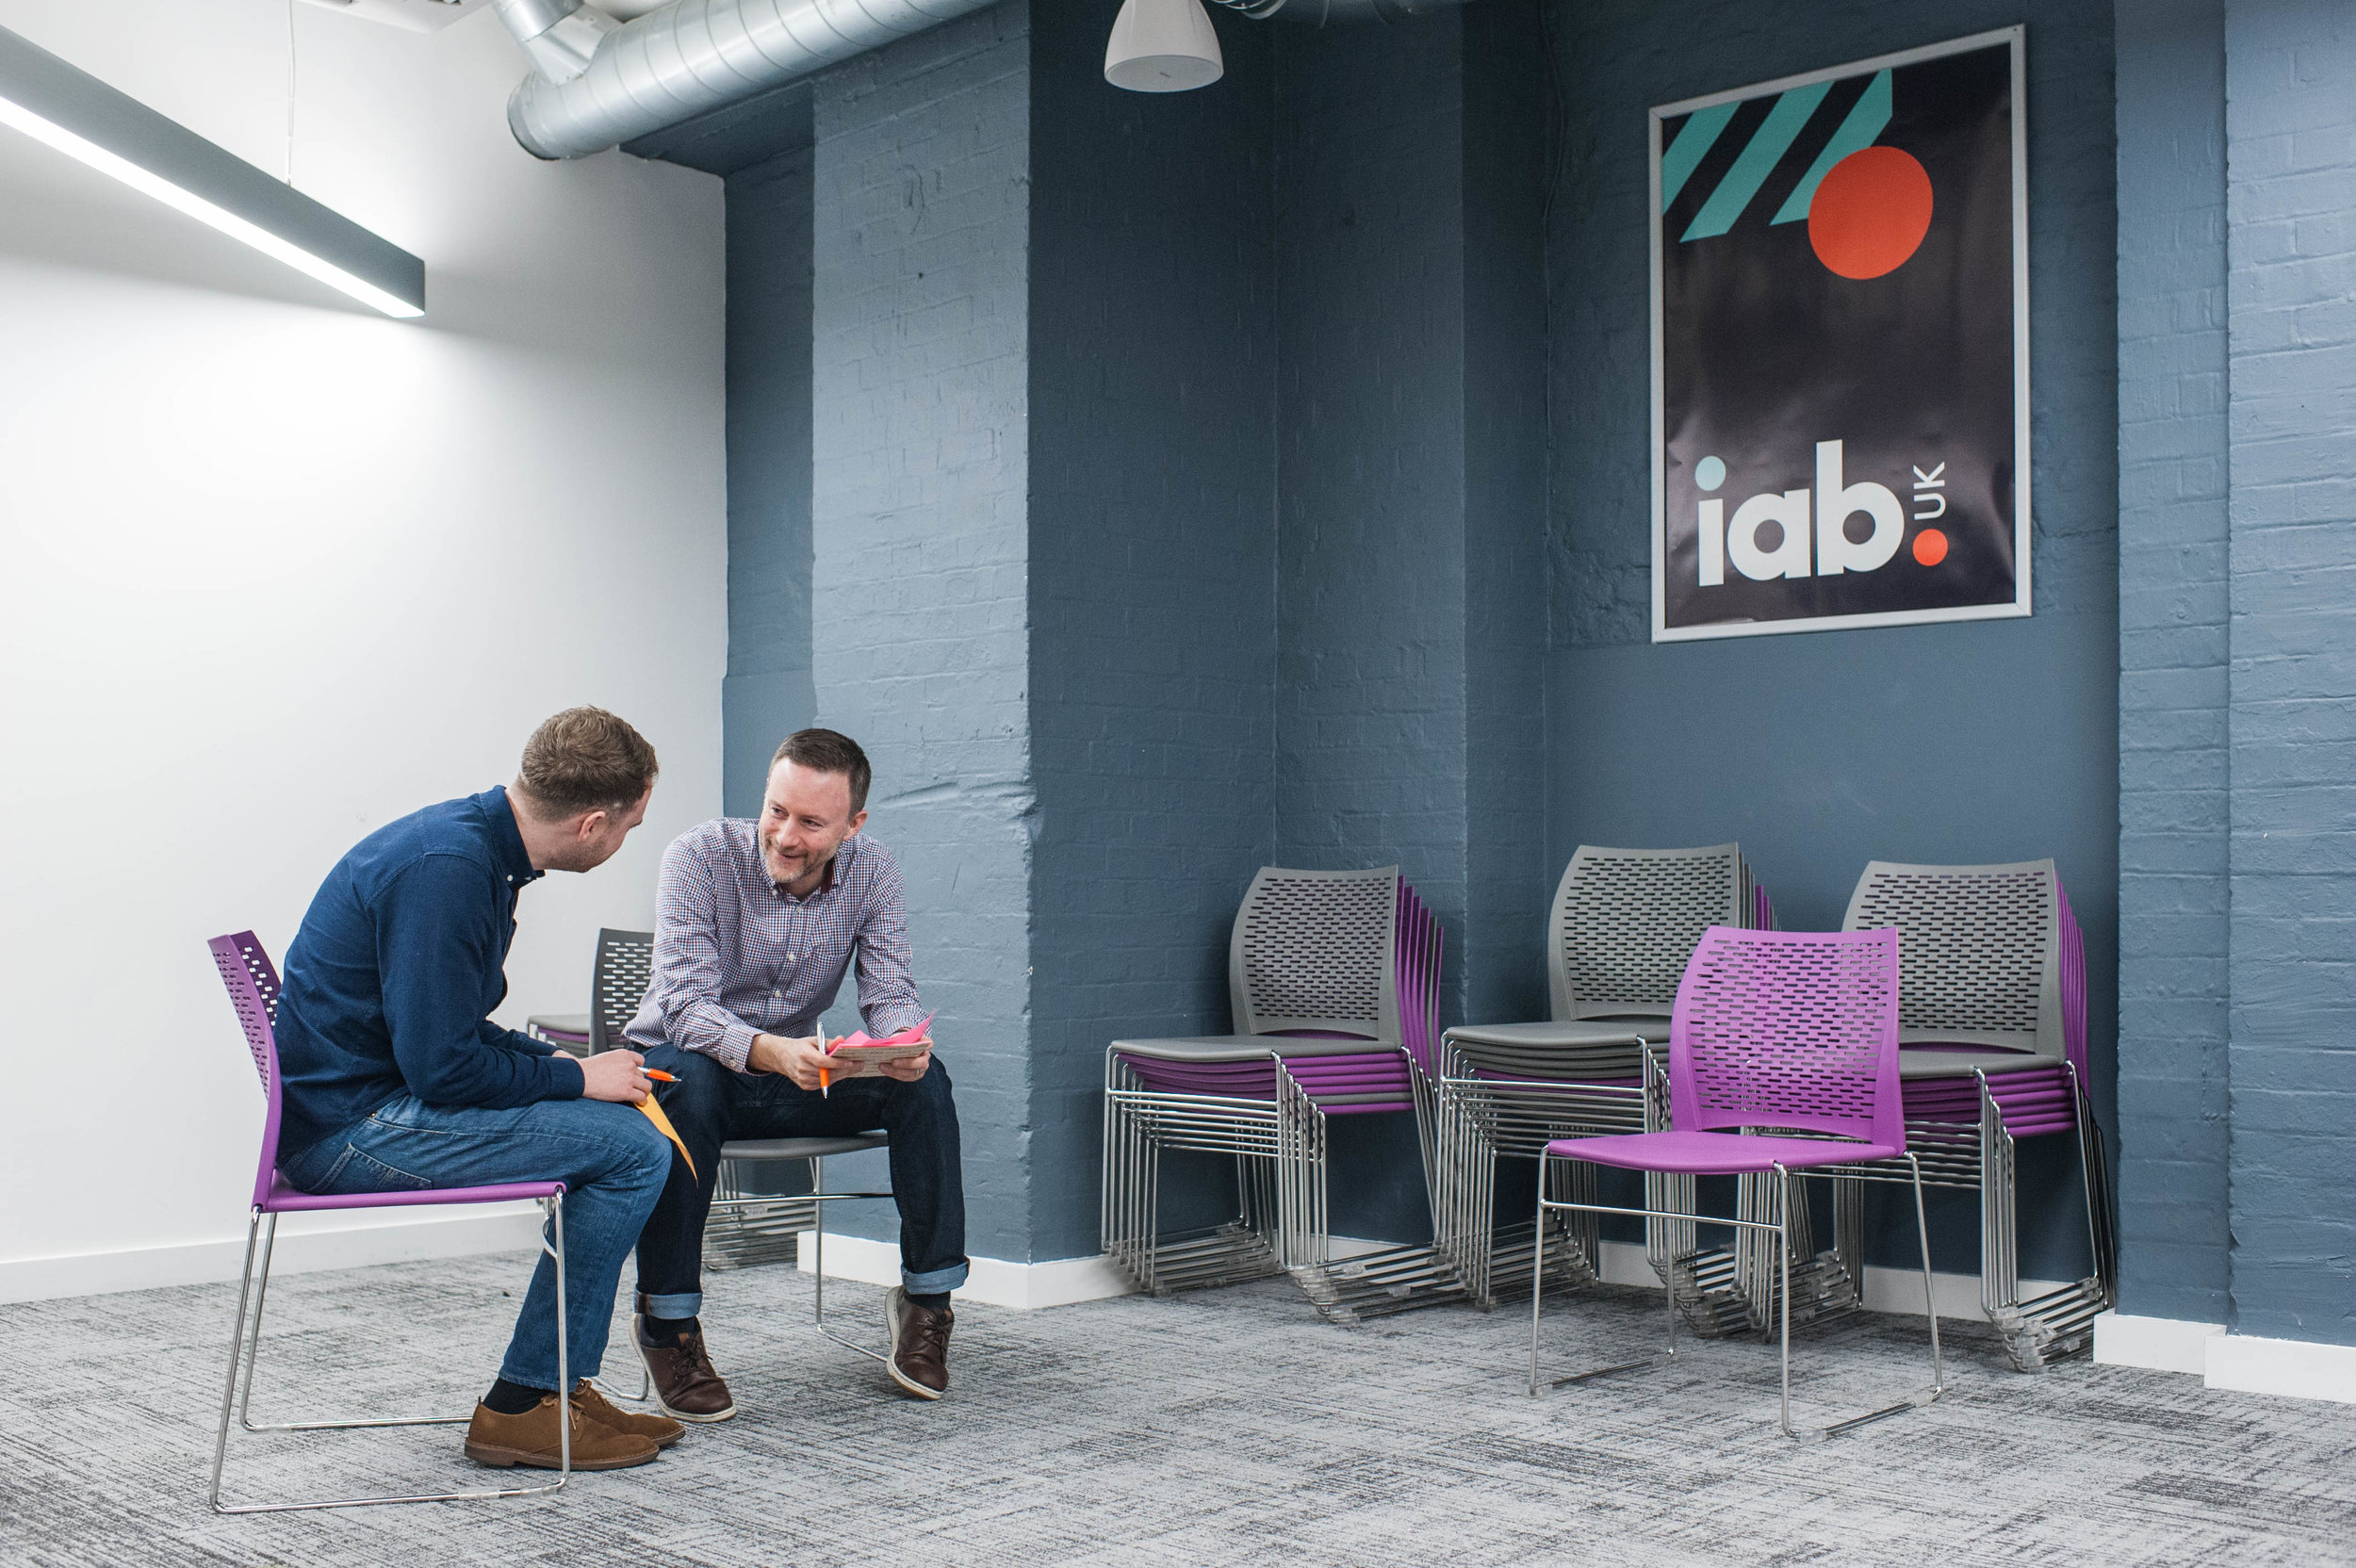 IAB Uk_Incidental Shots_SM (296 of 312).jpg